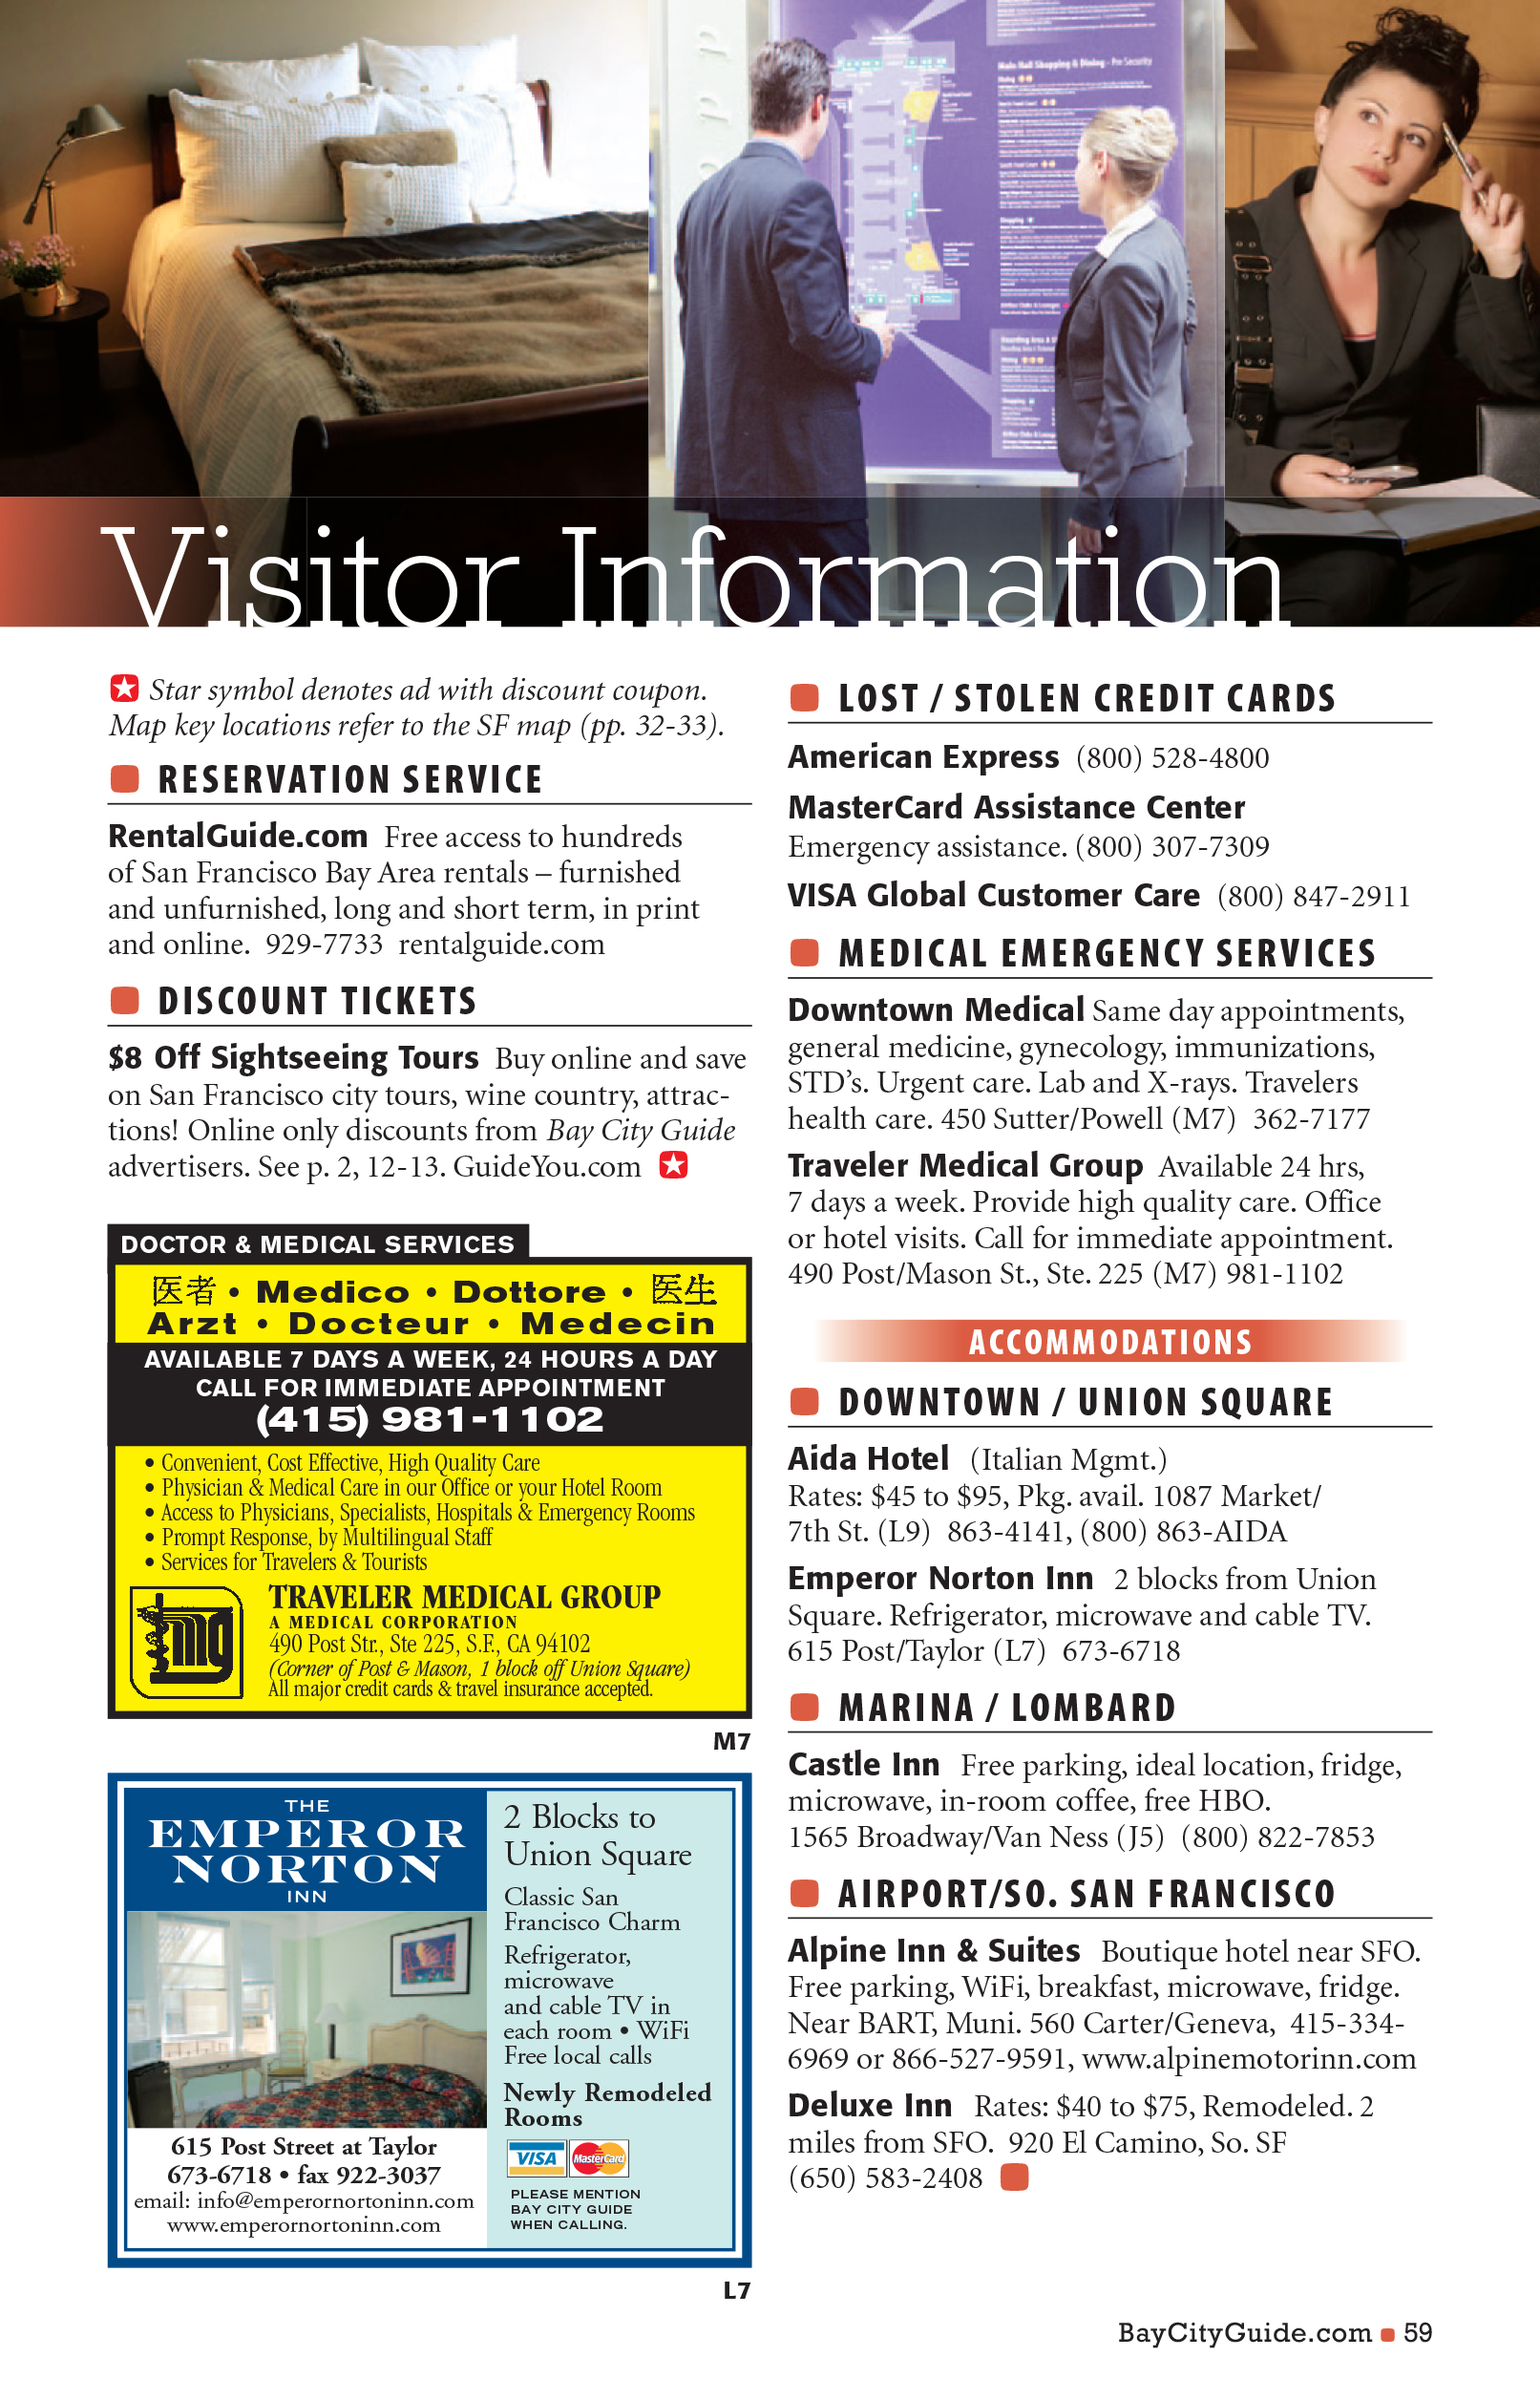 Bay City Guide magazine - Visitor Information